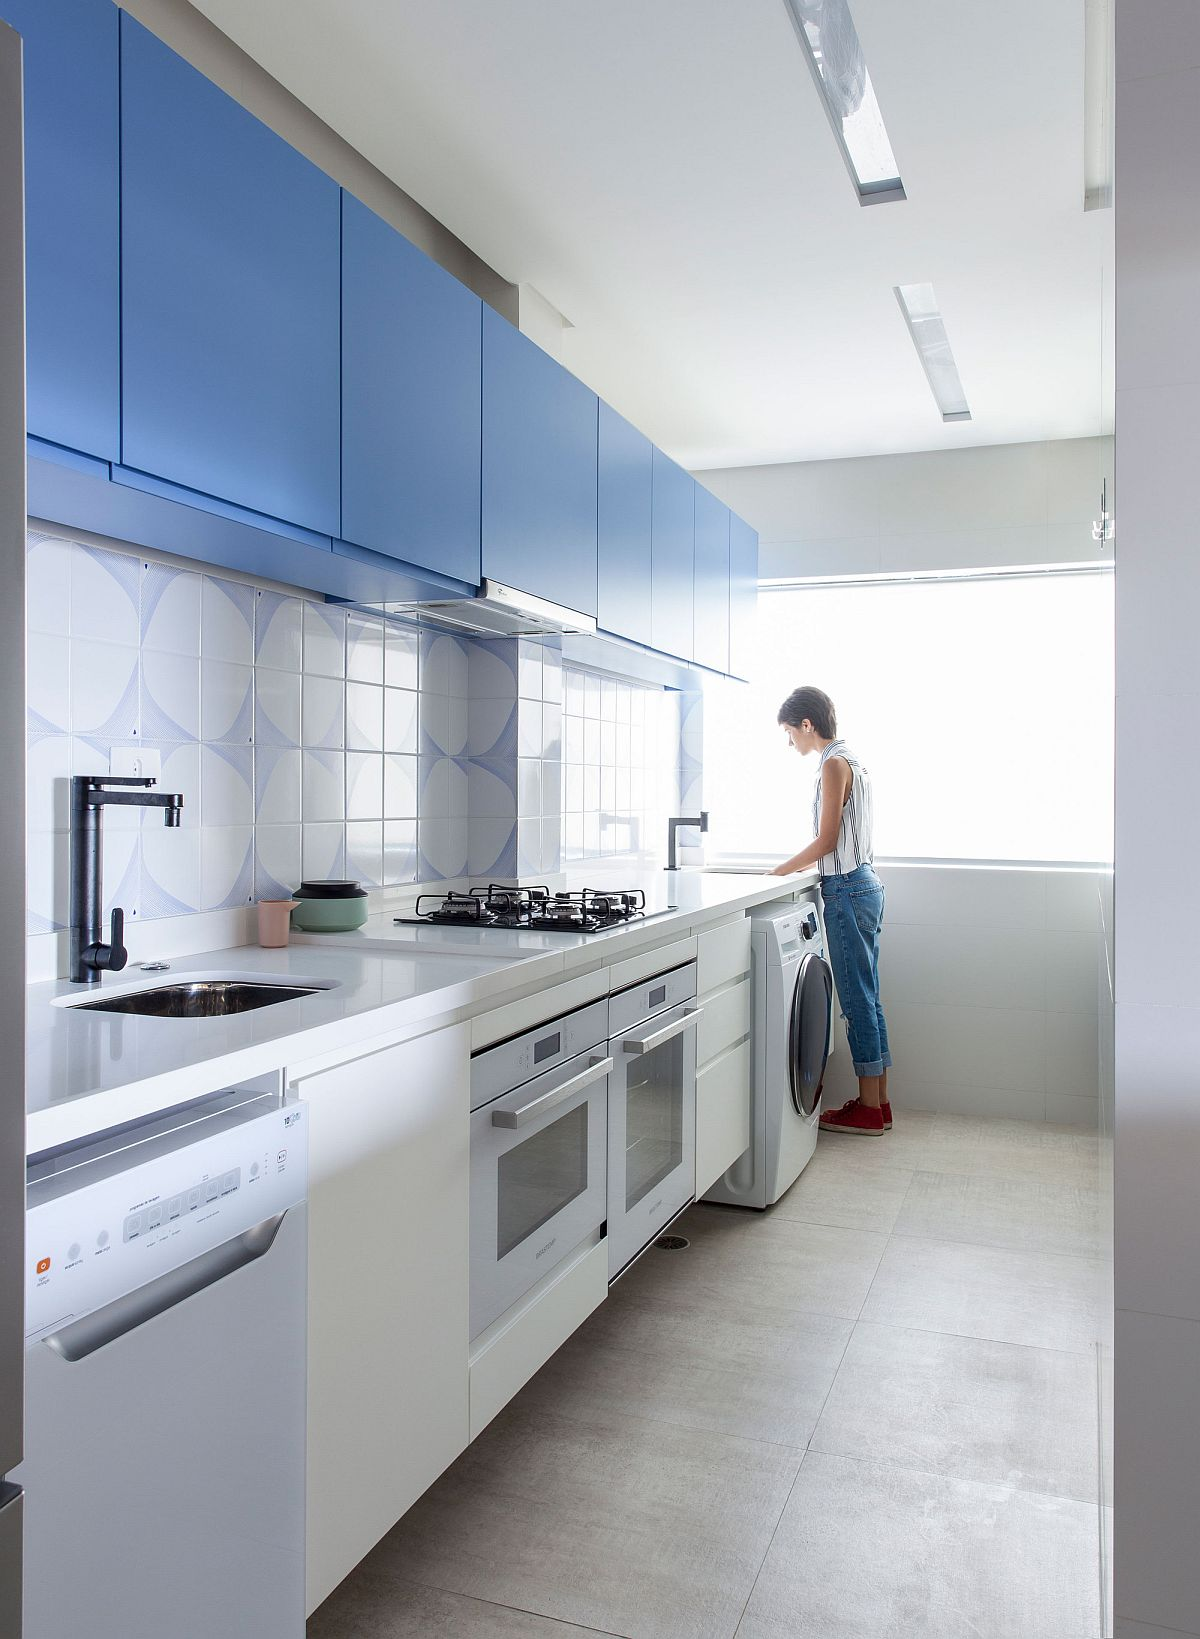 Blue and white give the modern kitchen a unique identity